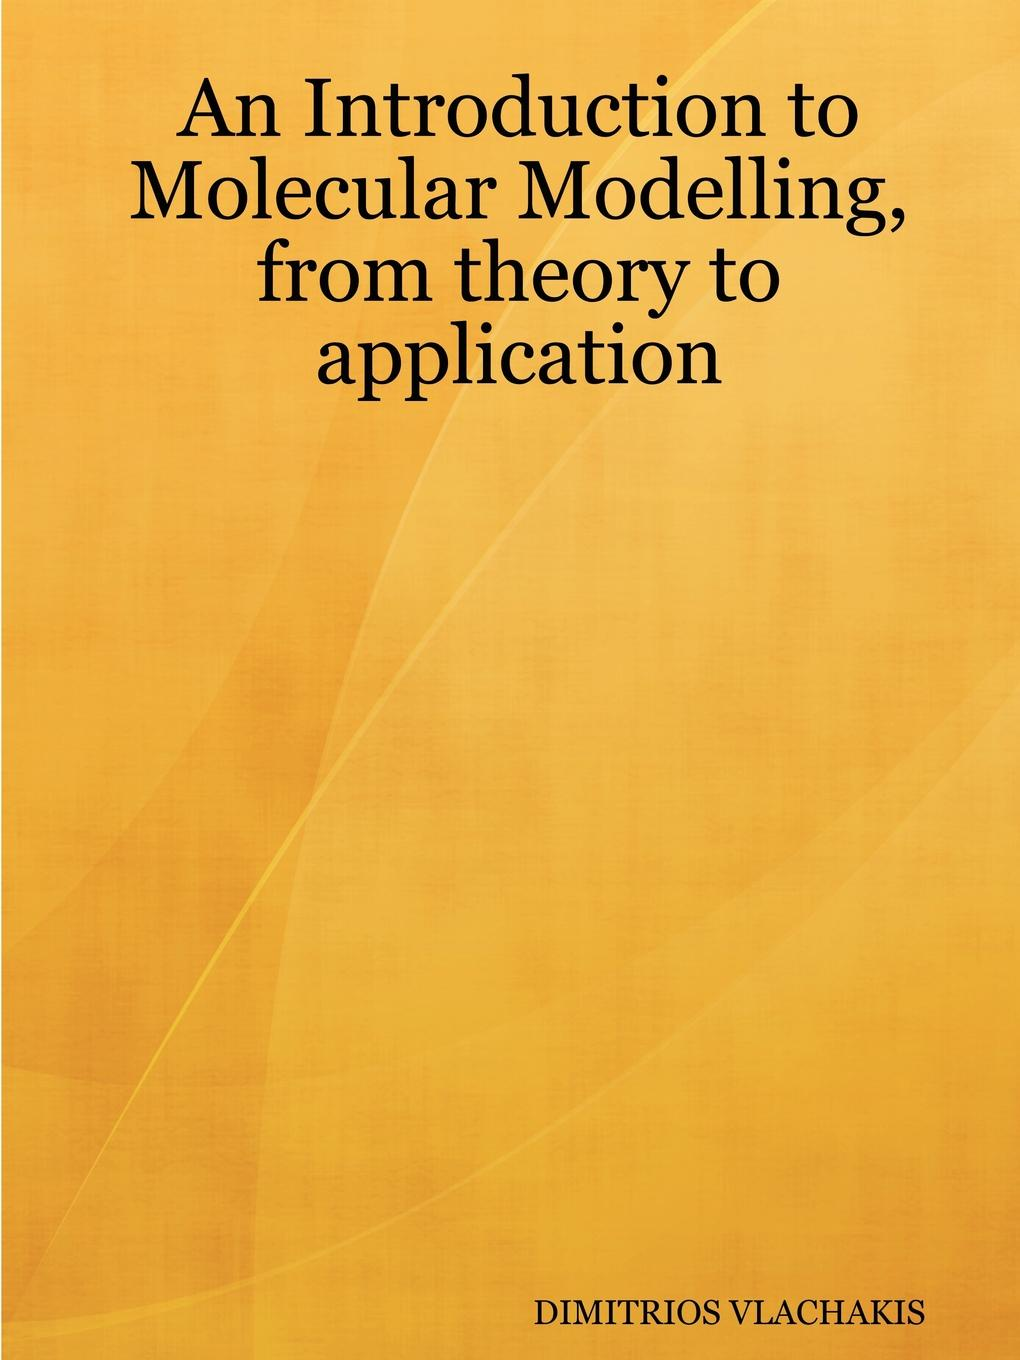 DIMITRIOS VLACHAKIS An Introduction to Molecular Modelling, from theory to application stefan kühl managing projects a very brief introduction